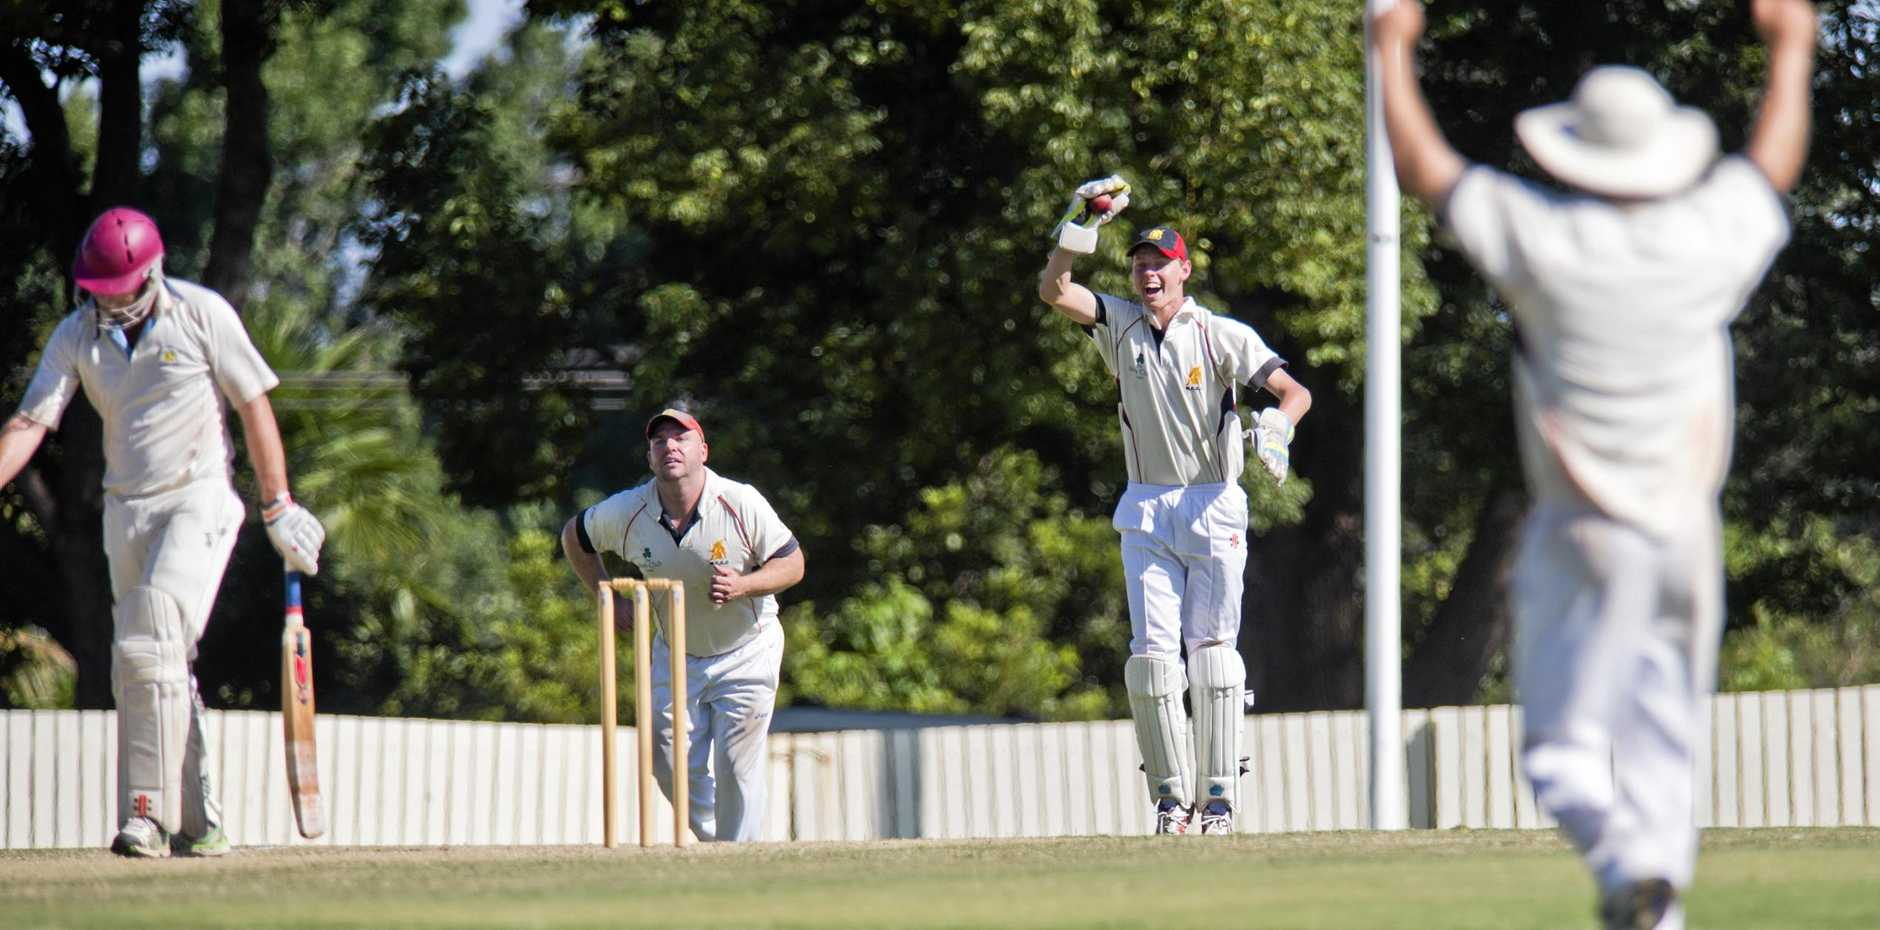 GOT HIM: Jaidyn Teske, keeper for Met Easts celebrates the wicket of Chris Gillam during the TCI semi final between Mets and Wests at the weekend.